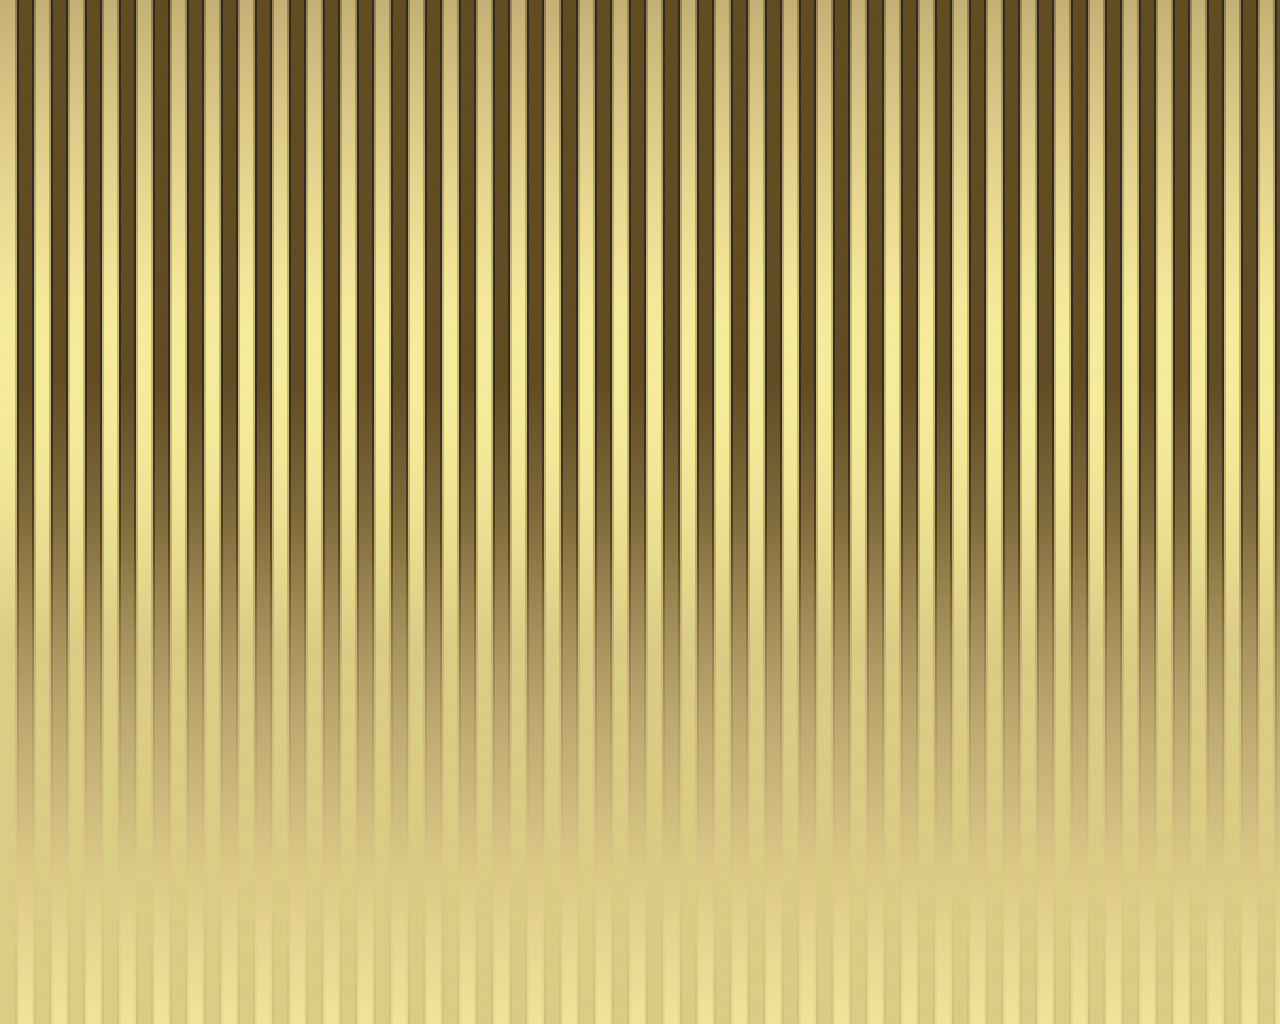 Blue Striped Wallpaper: Gold And Navy Wallpaper